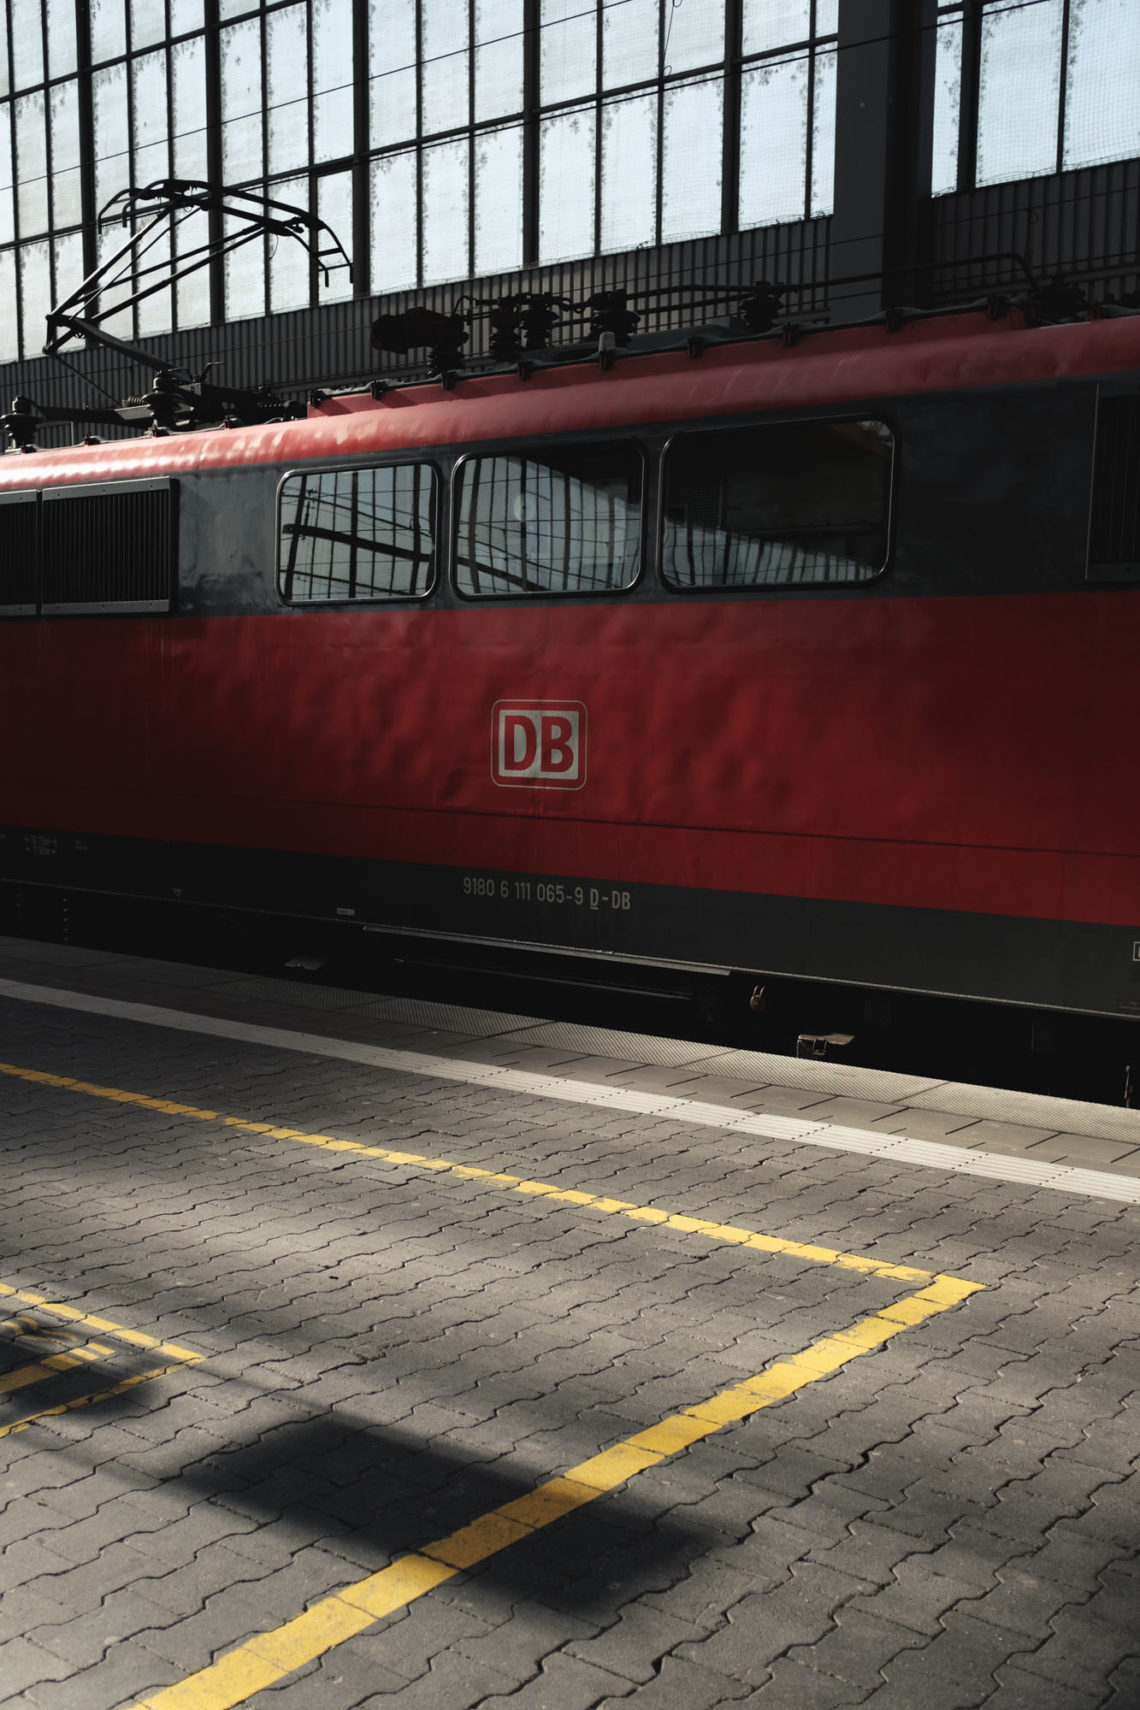 DB - Munich, Germany - Fuji X100F